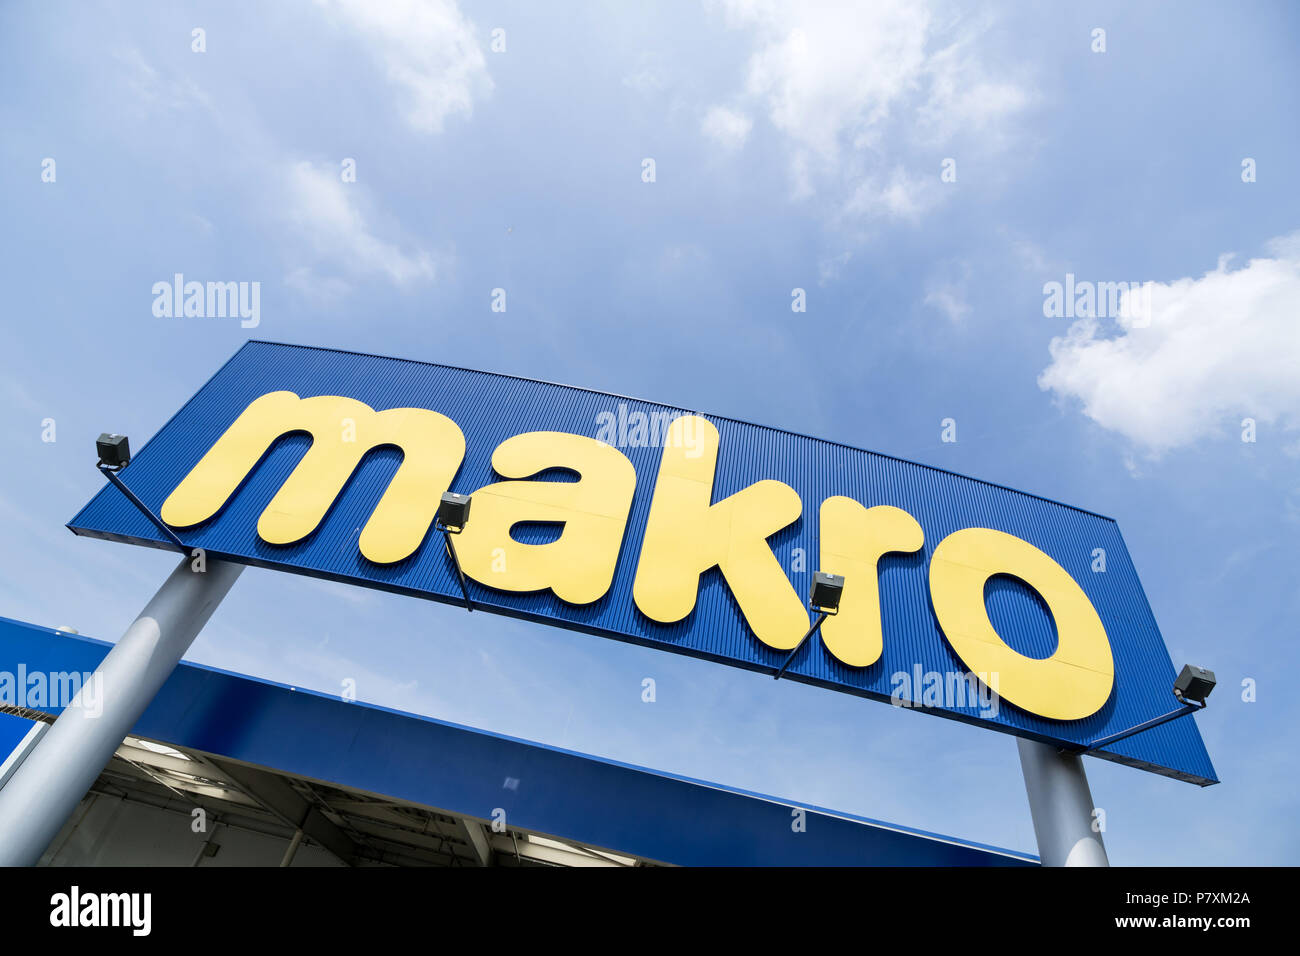 Makro sign at branch. Makro is an international brand of Warehouse clubs, also called cash and carries. - Stock Image